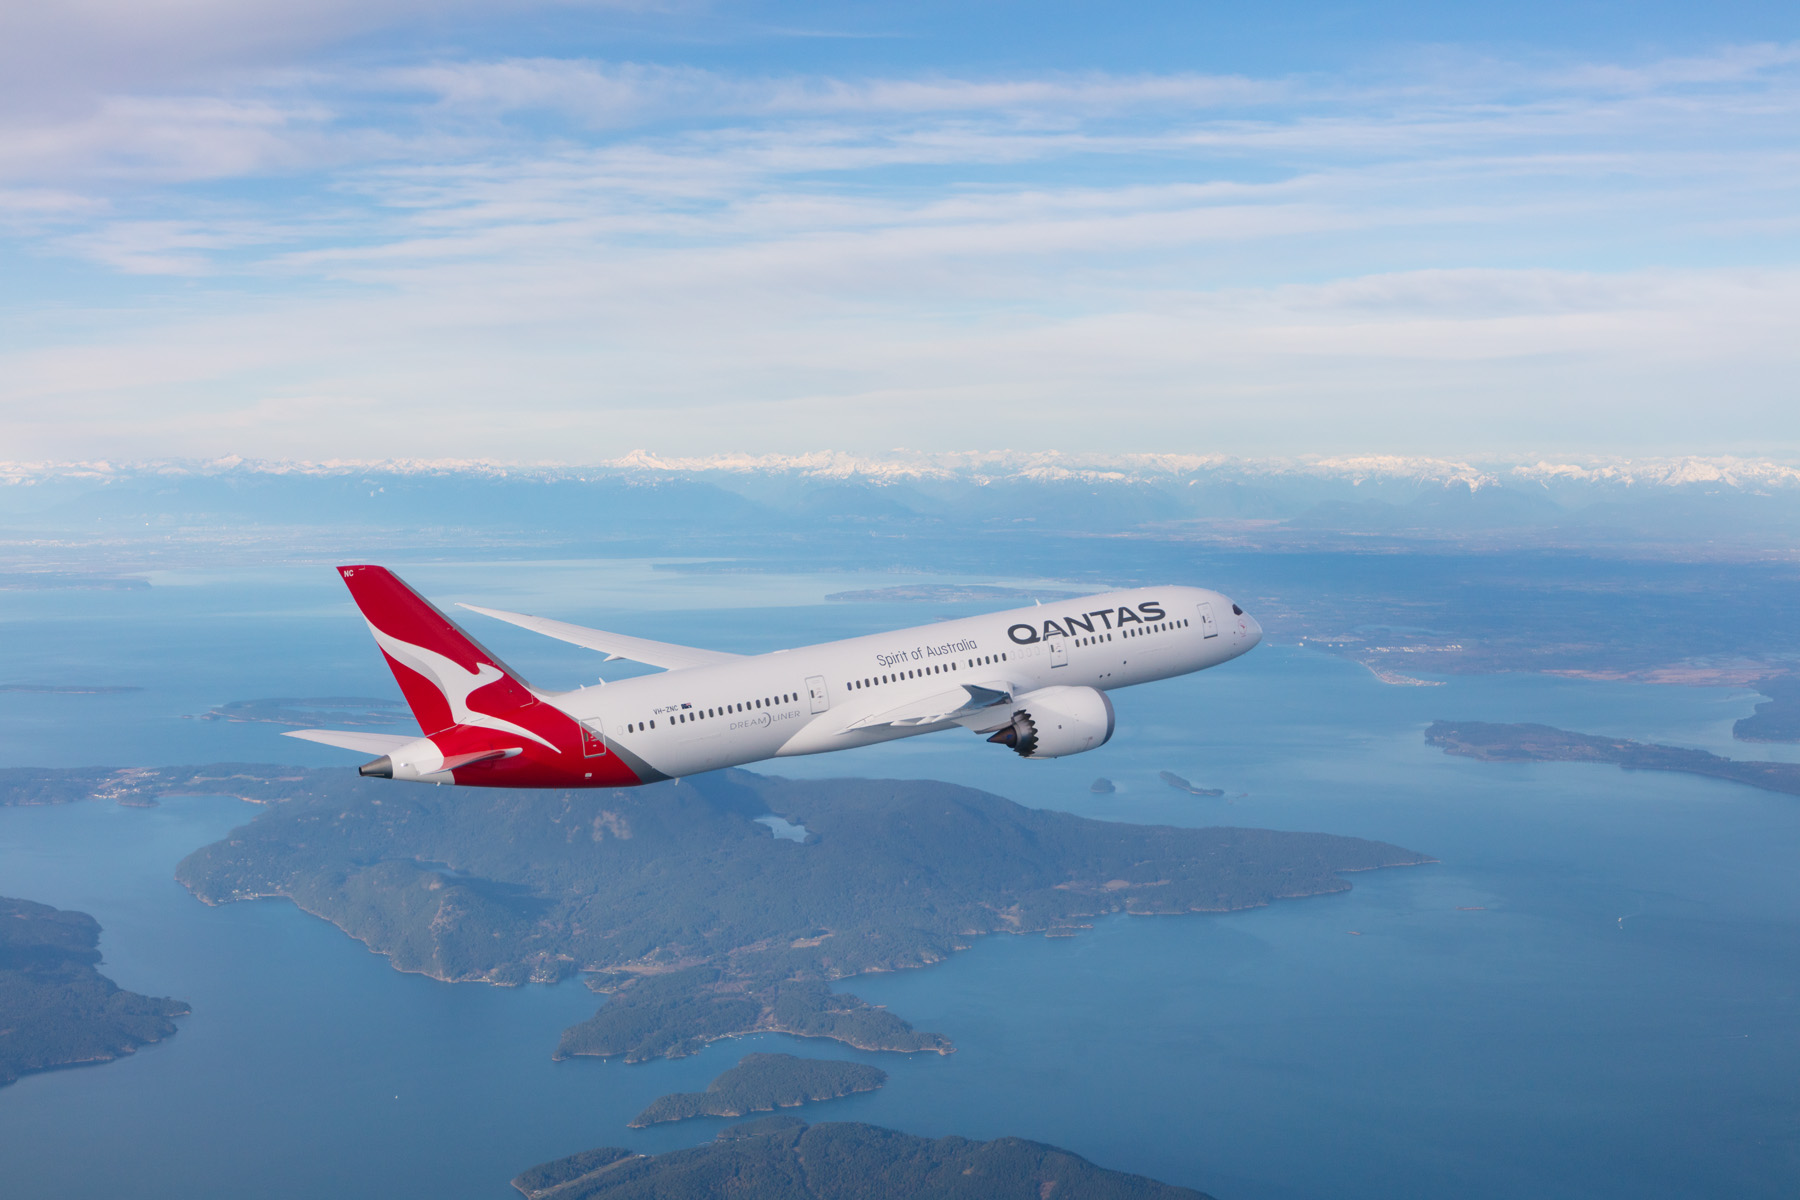 Qantas international routes likely to remain on hold until next summer